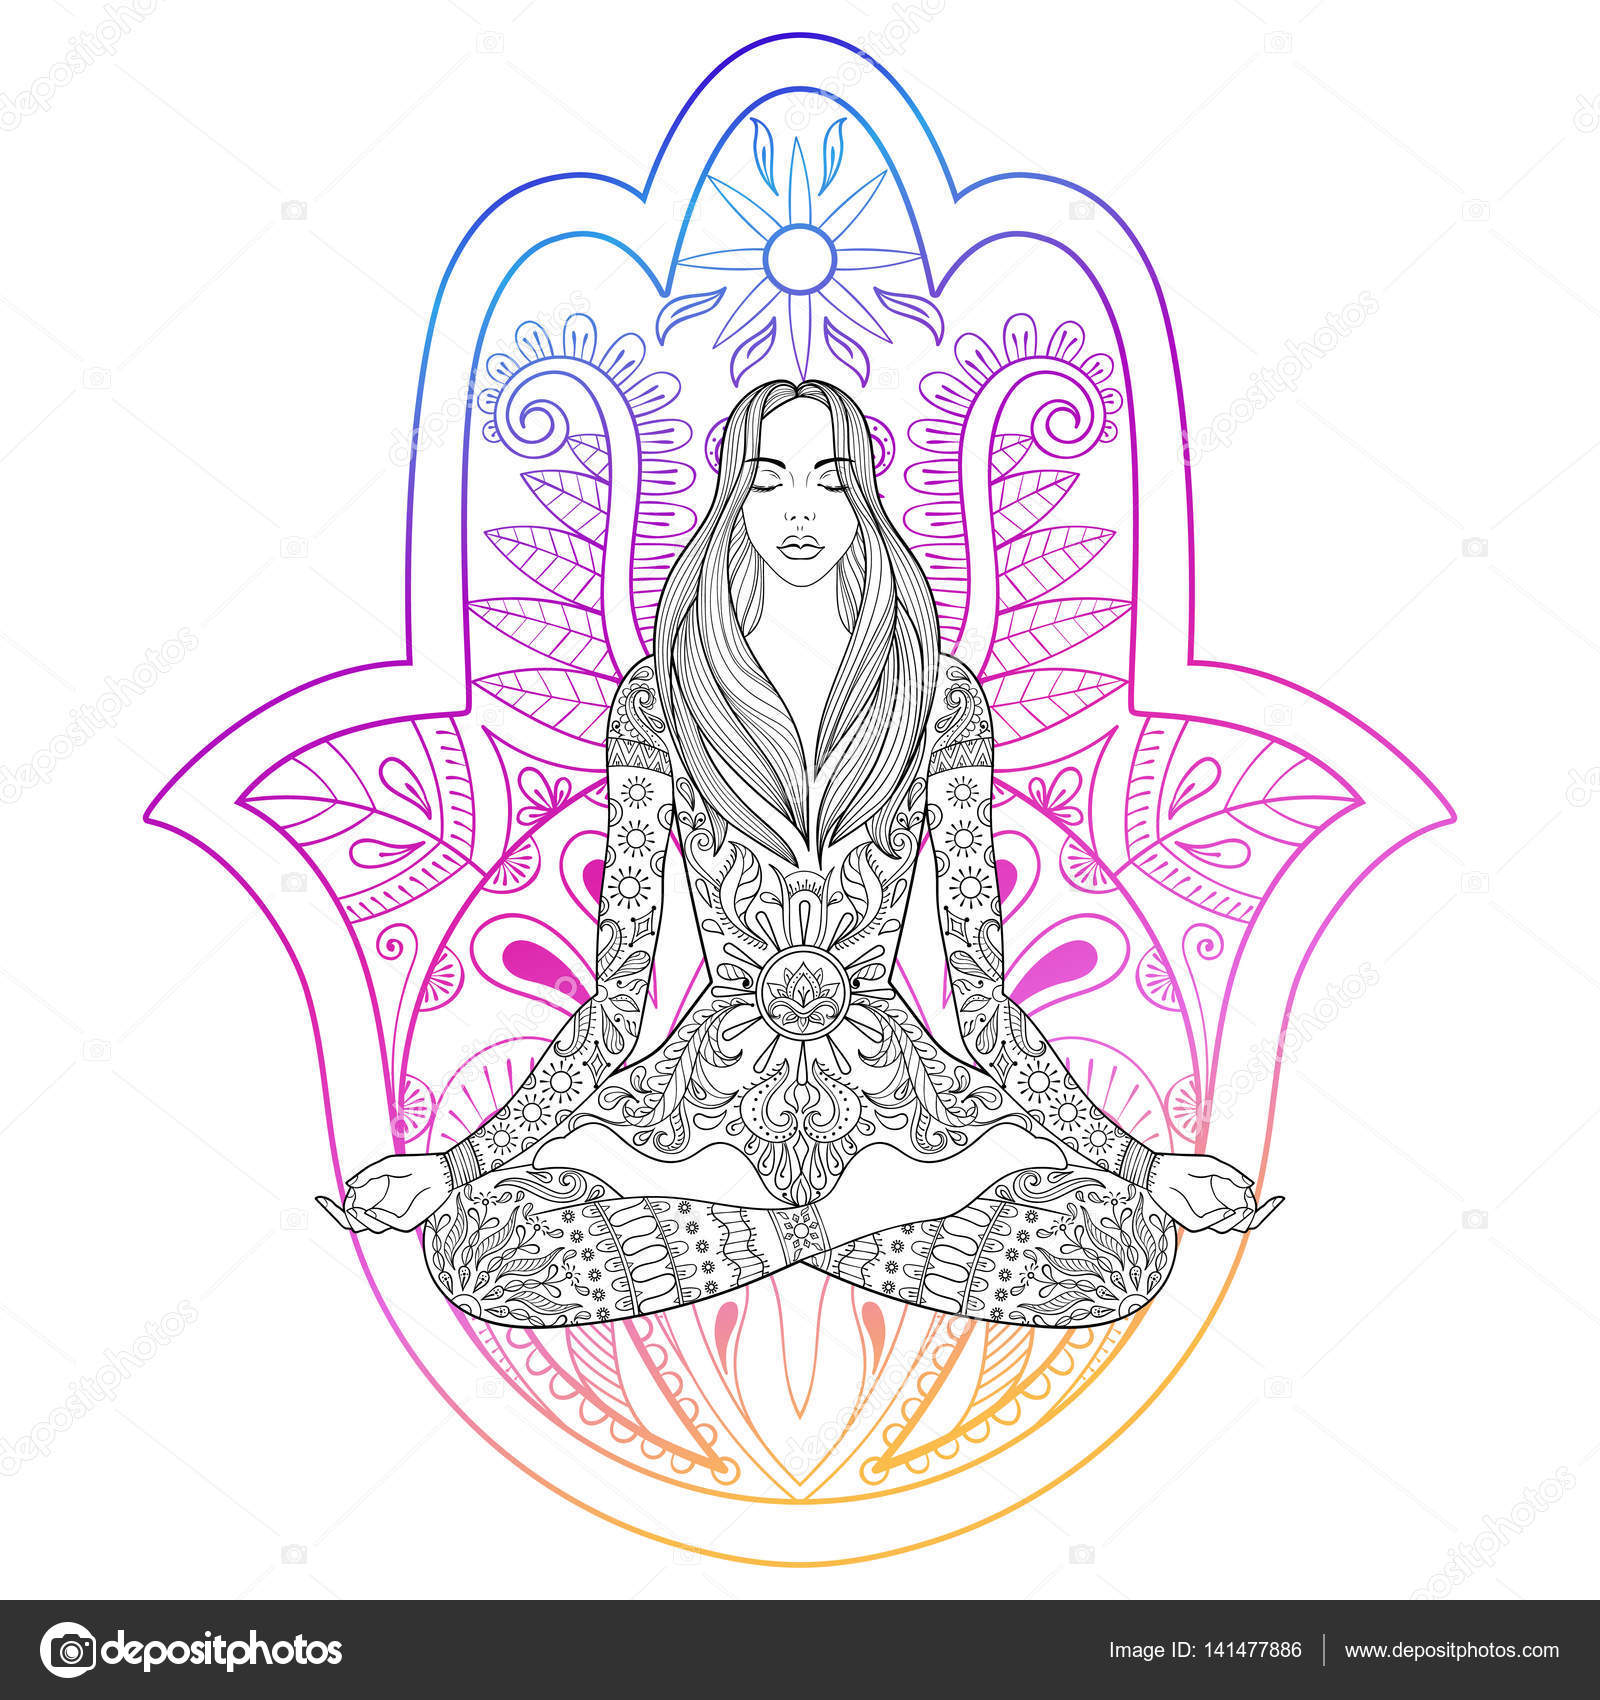 Woman Silhouette Colouring Pages - Women Model Silhouette Png ... | 1024x963